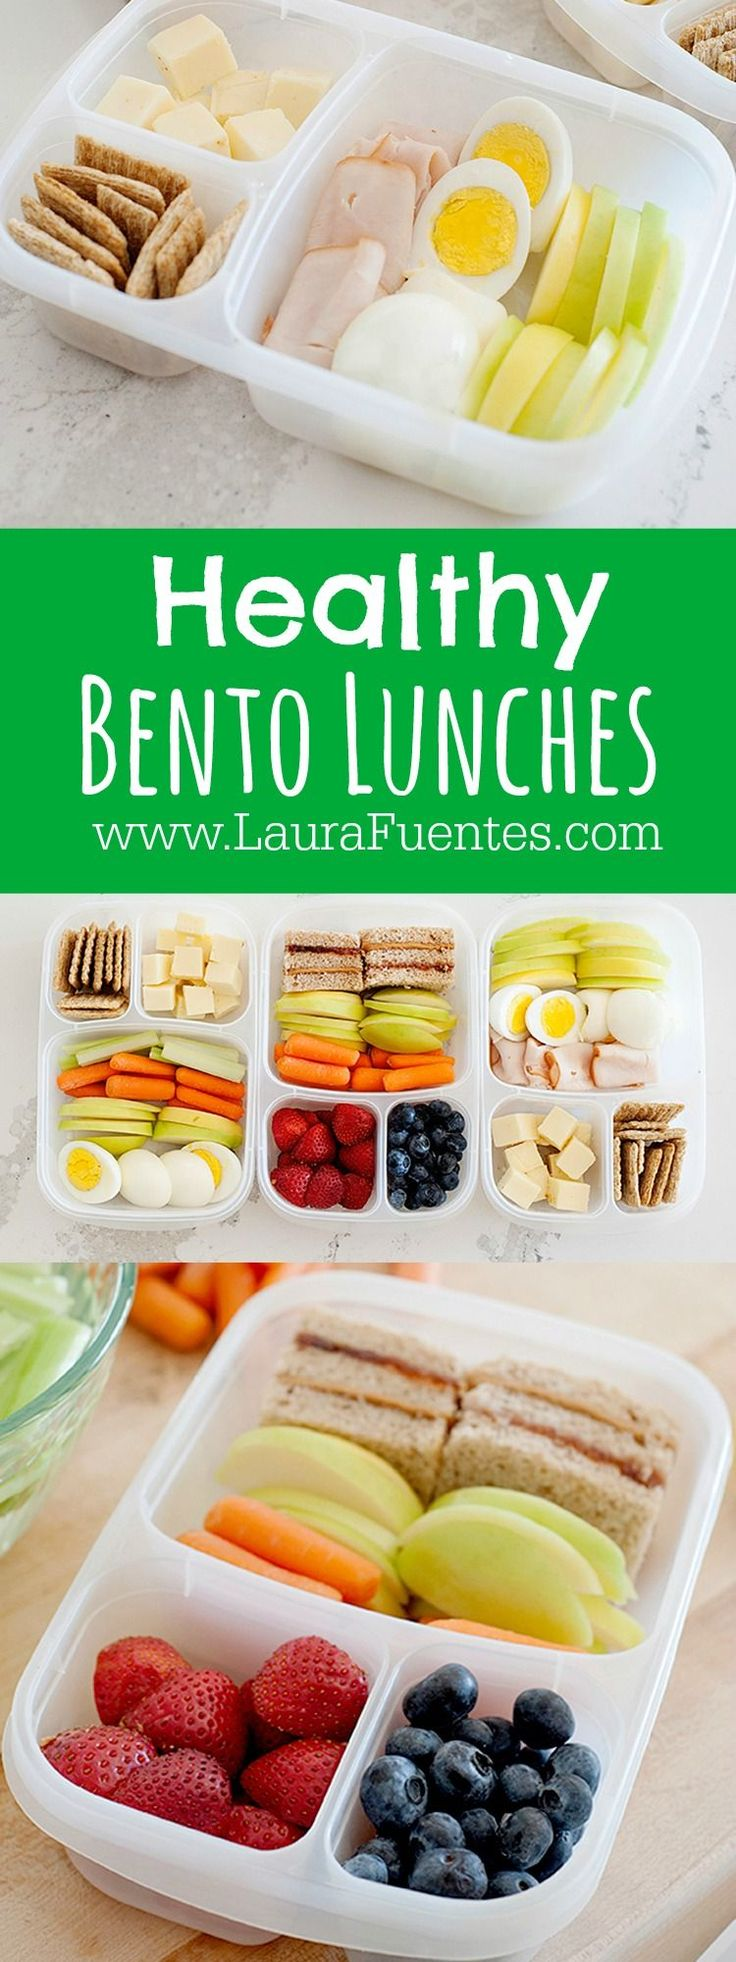 Healthy Bento Lunches | The options are endless, but here are a few ways we love to eat our veggies! #easylunchboxes #lunchbox